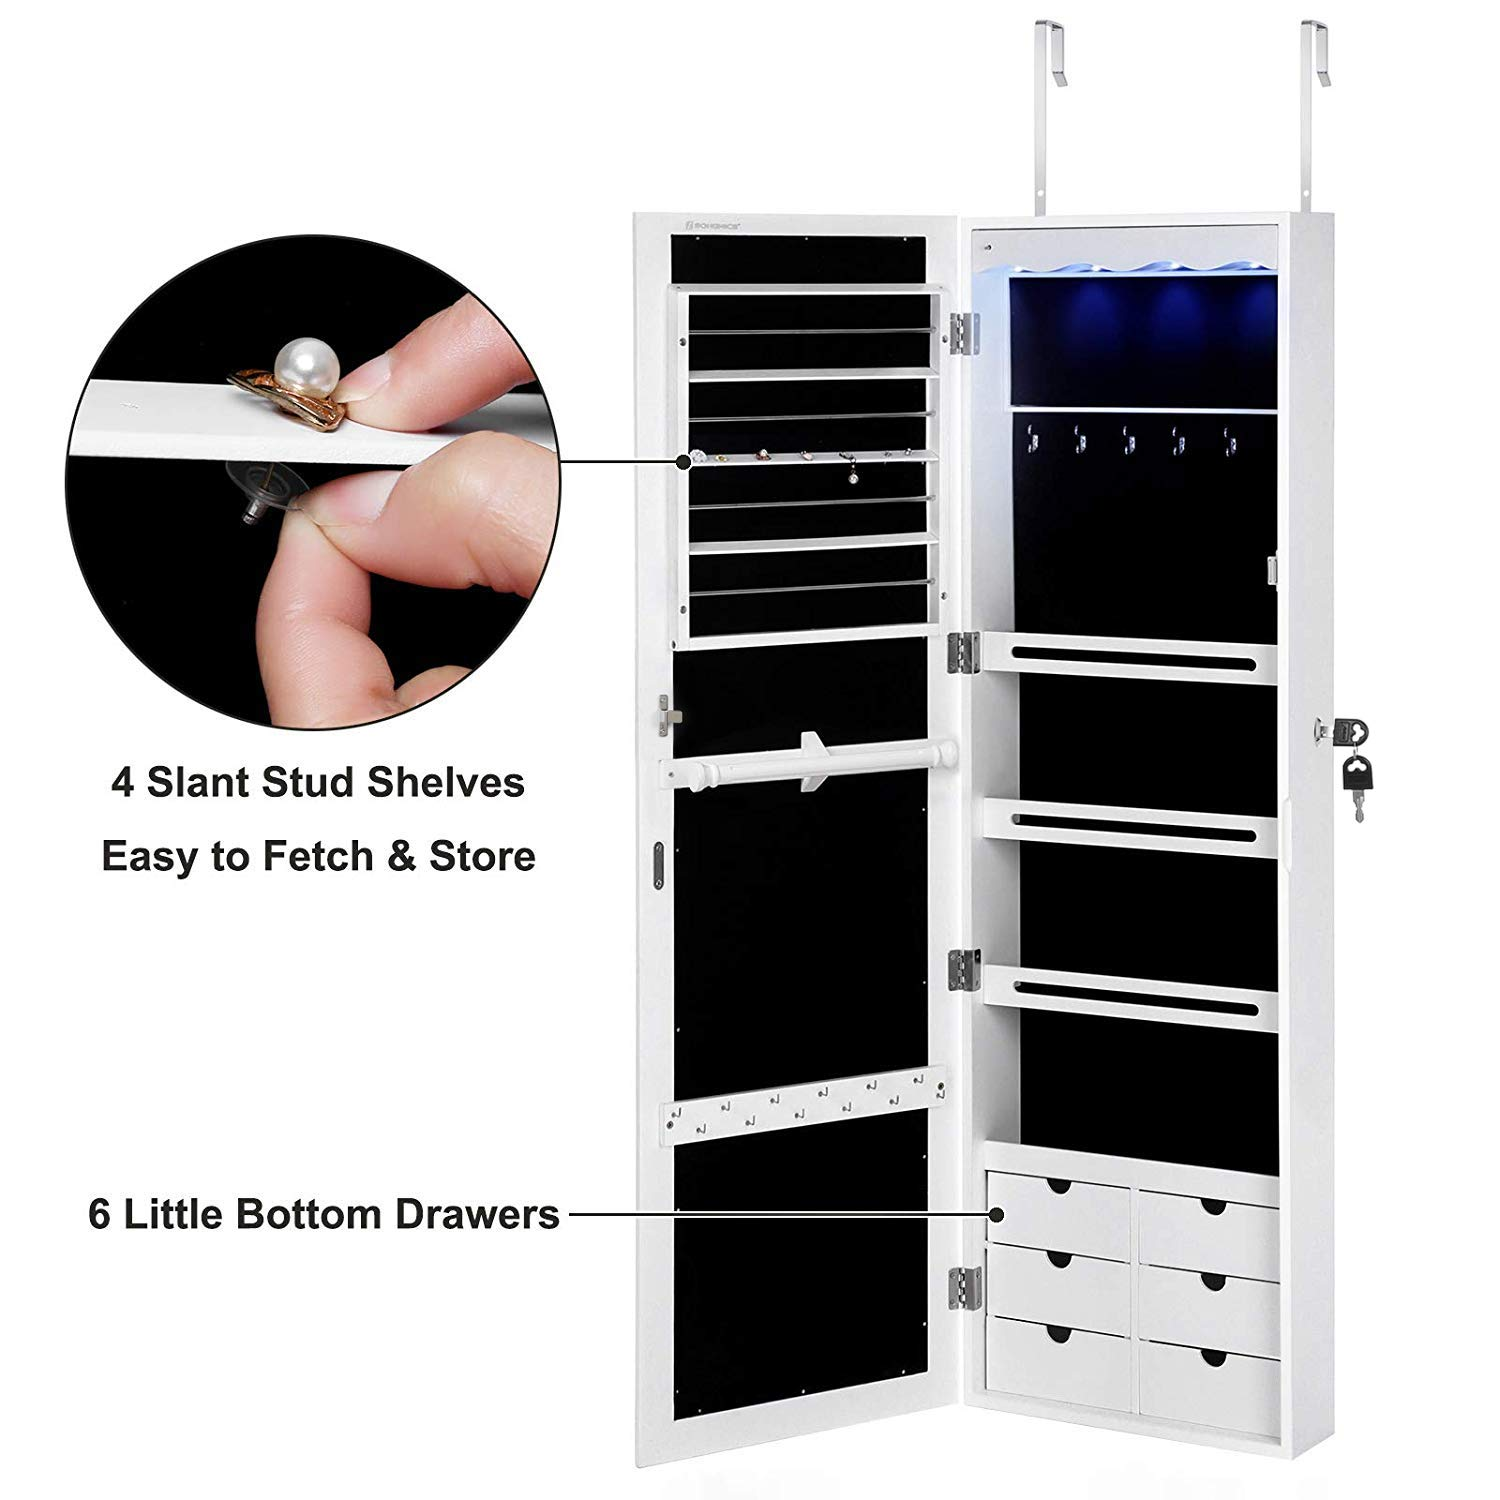 SONGMICS LED Jewelry Cabinet Armoire with 6 Drawers Lockable Door/Wall Mounted Jewelry Organizer White Patented UJJC88W by SONGMICS (Image #9)